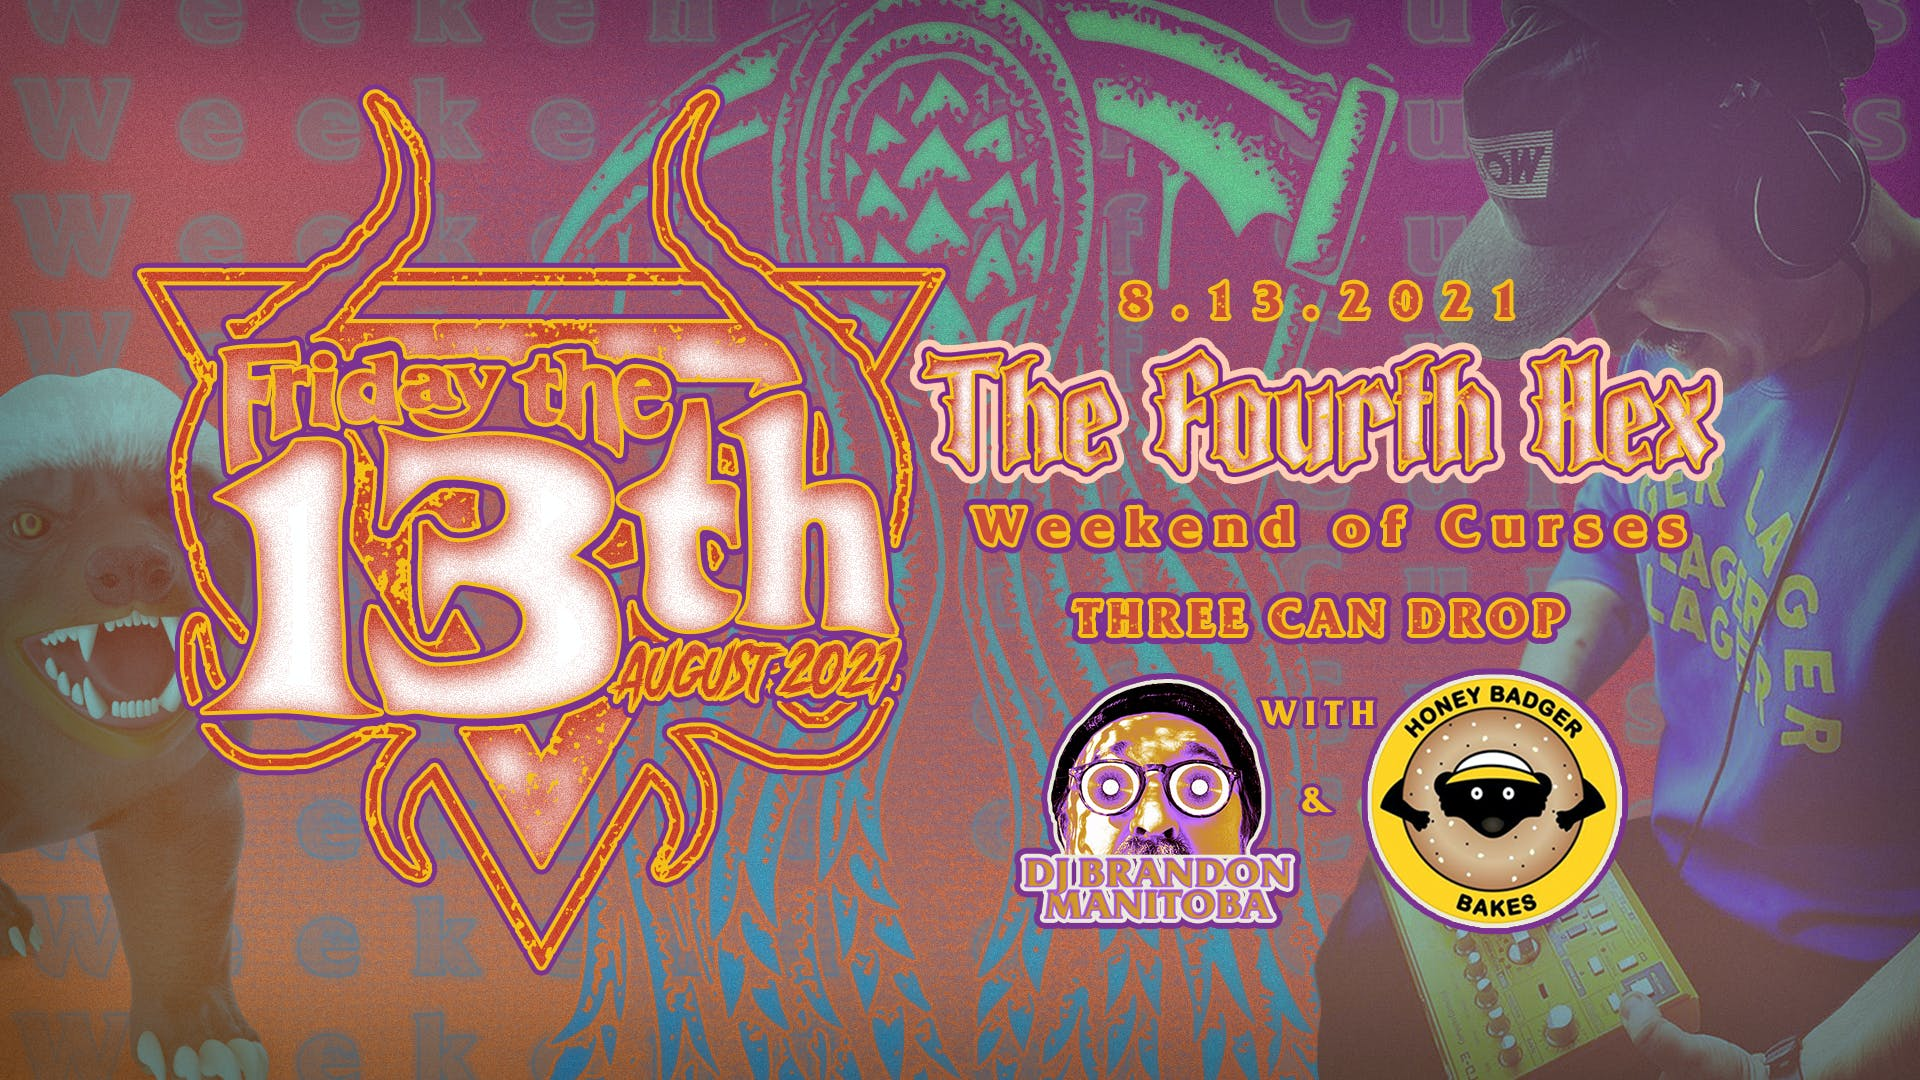 friday-13-fourth-hex-FB-event2